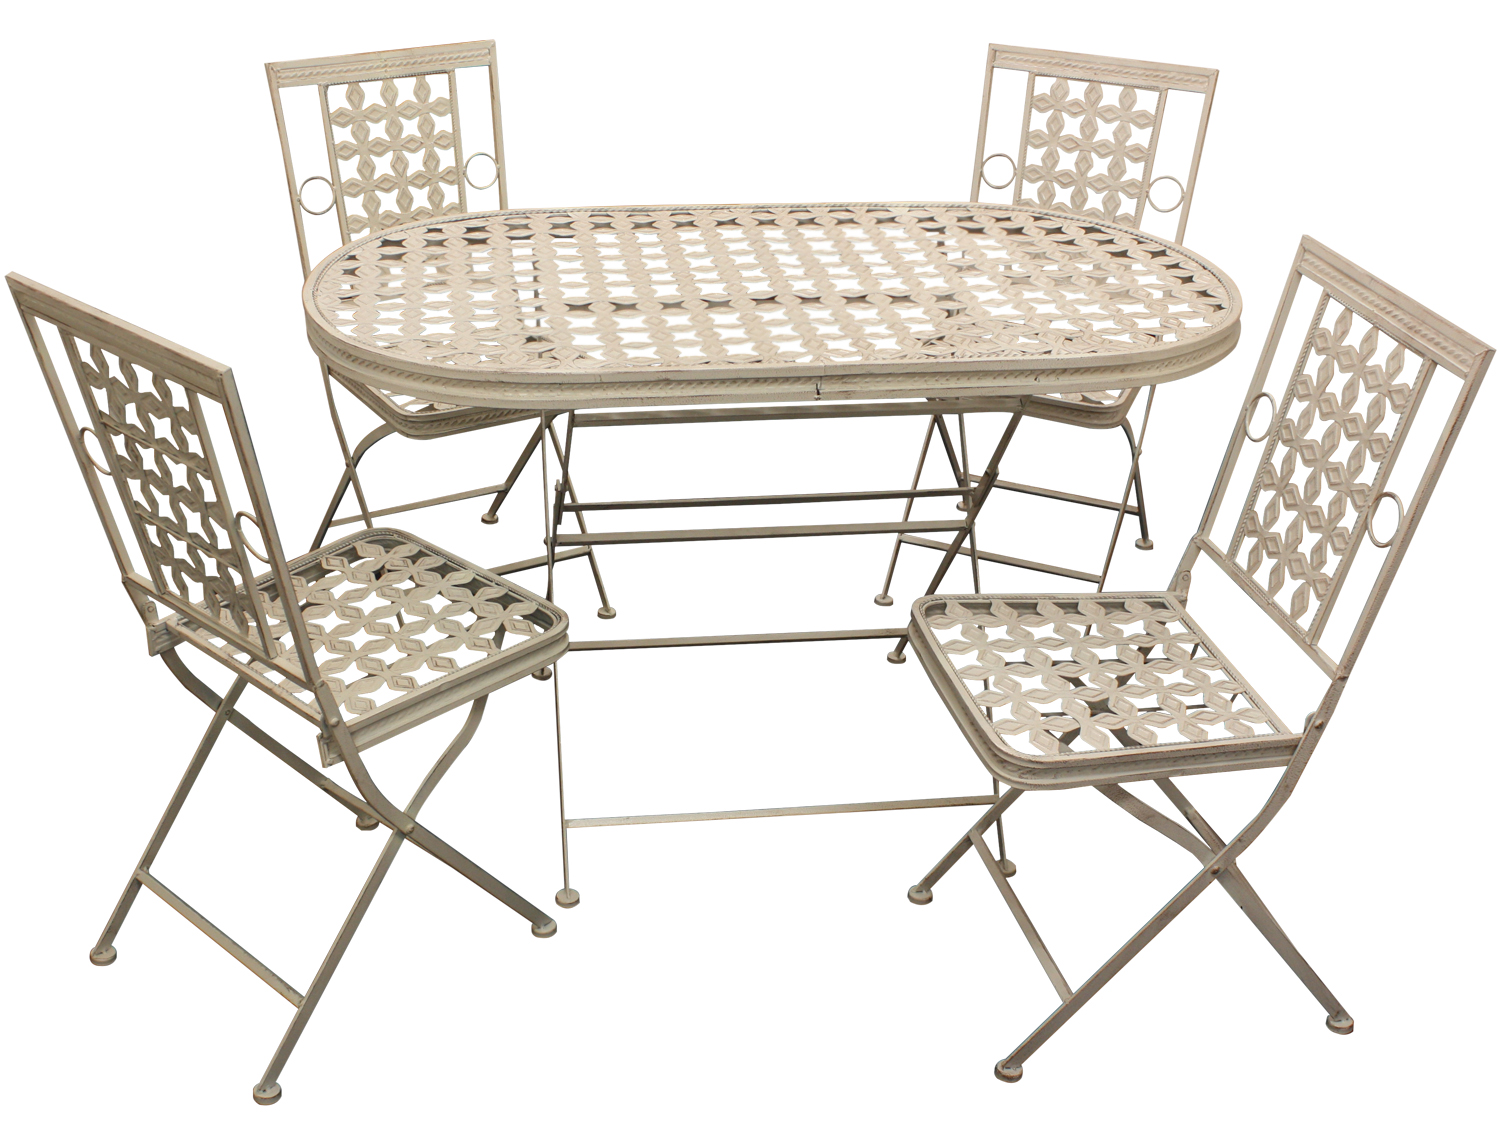 Maribelle folding metal outdoor garden patio dining table for Deck table and chair sets